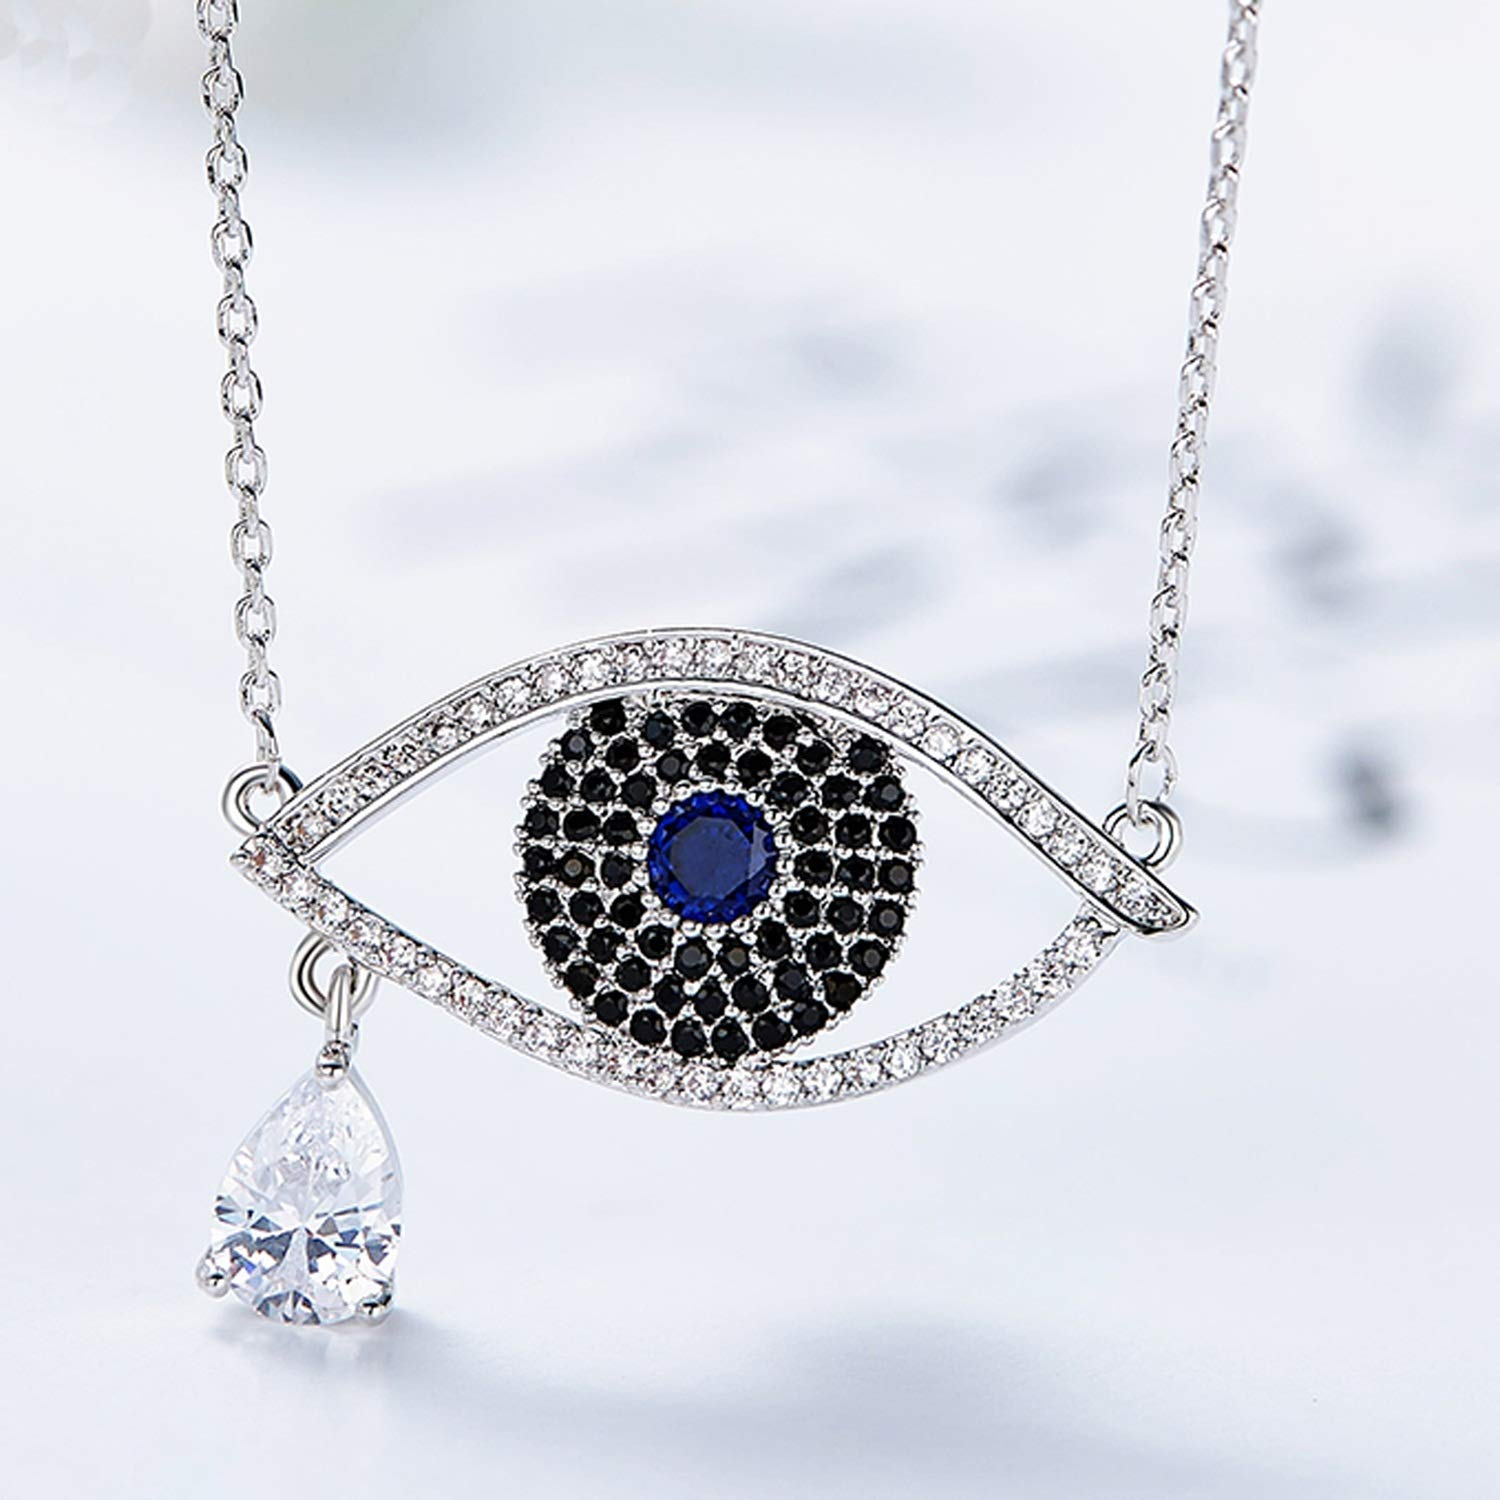 Epinki Shiny Women Necklace Eyes Shape Pendant Chain with Black Cubic Zirconia